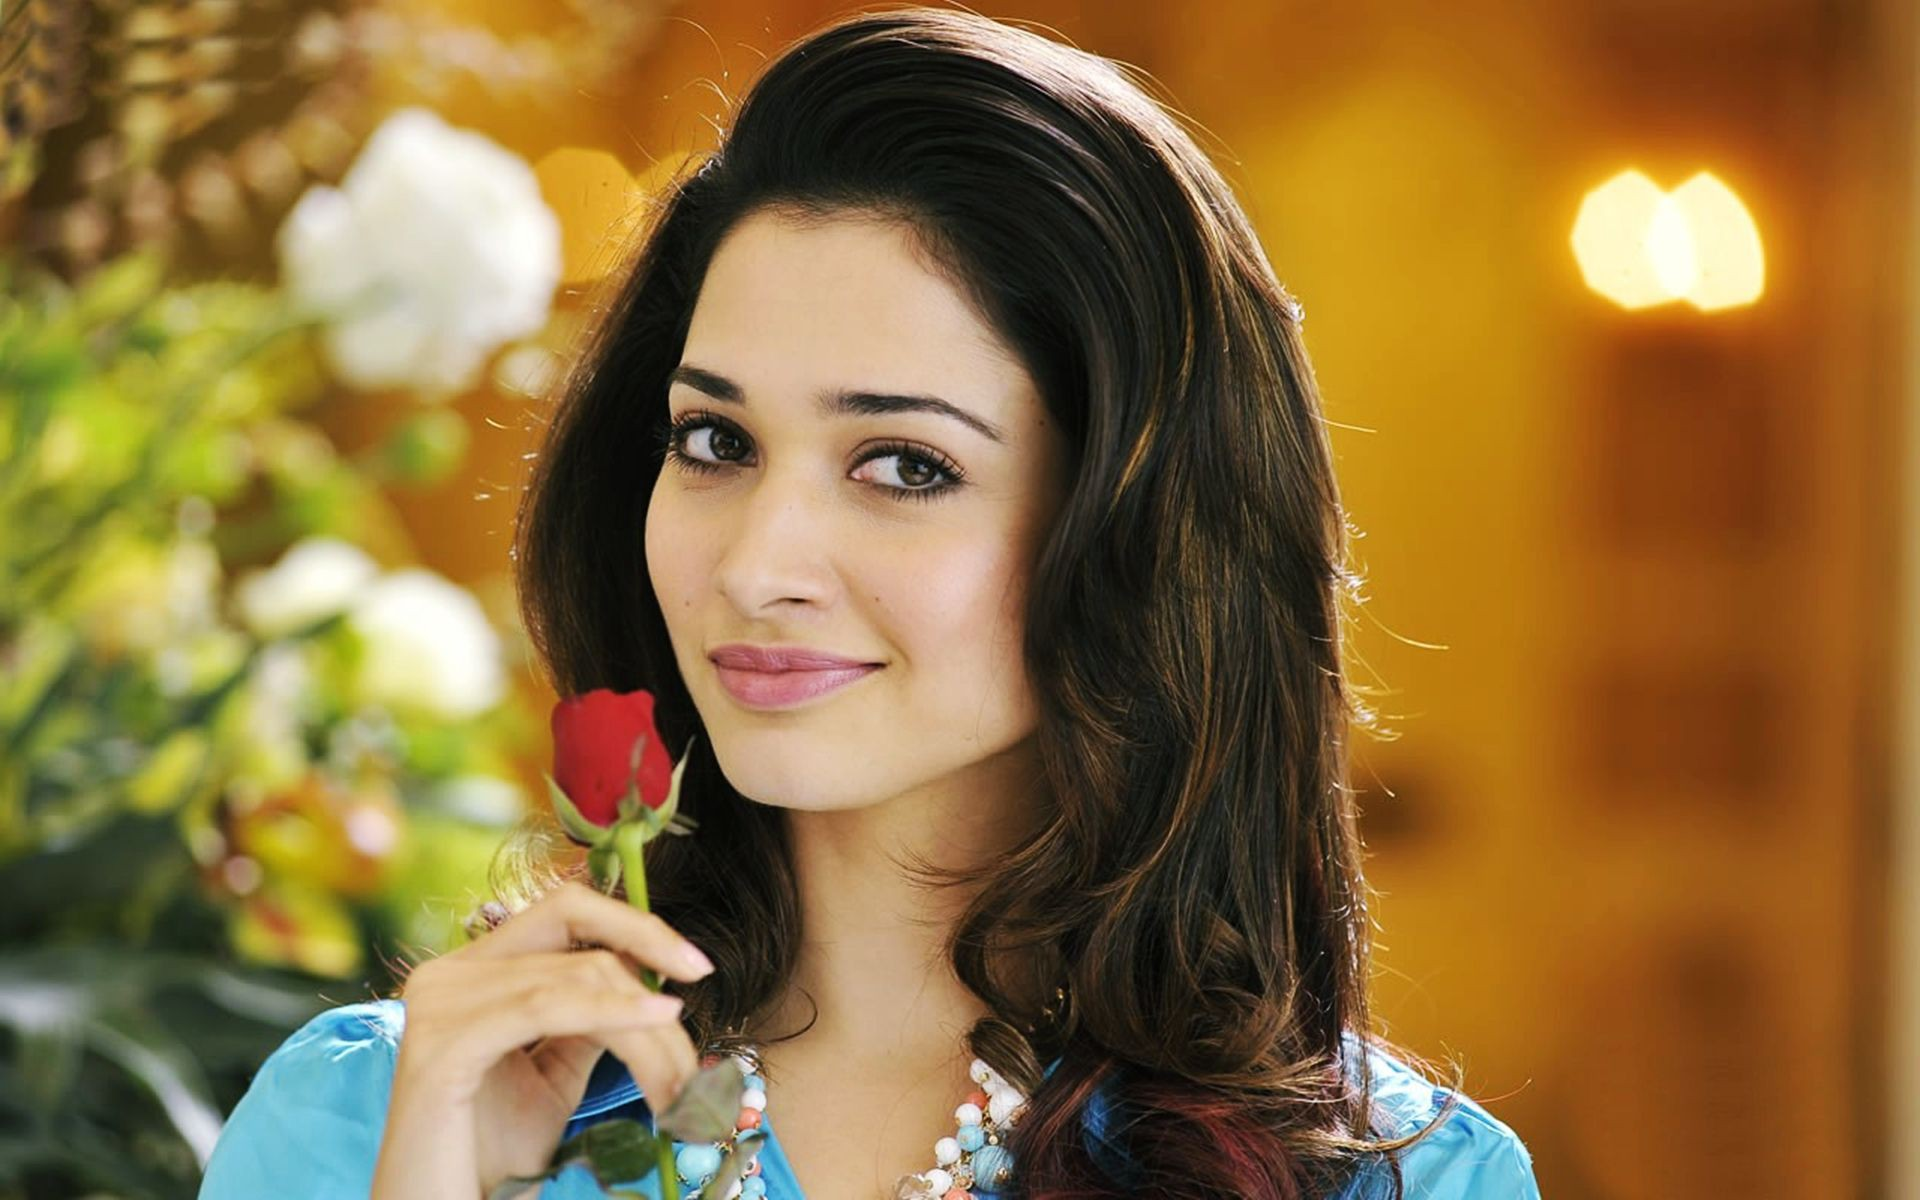 tamanna bhatia wallpapers pictures images